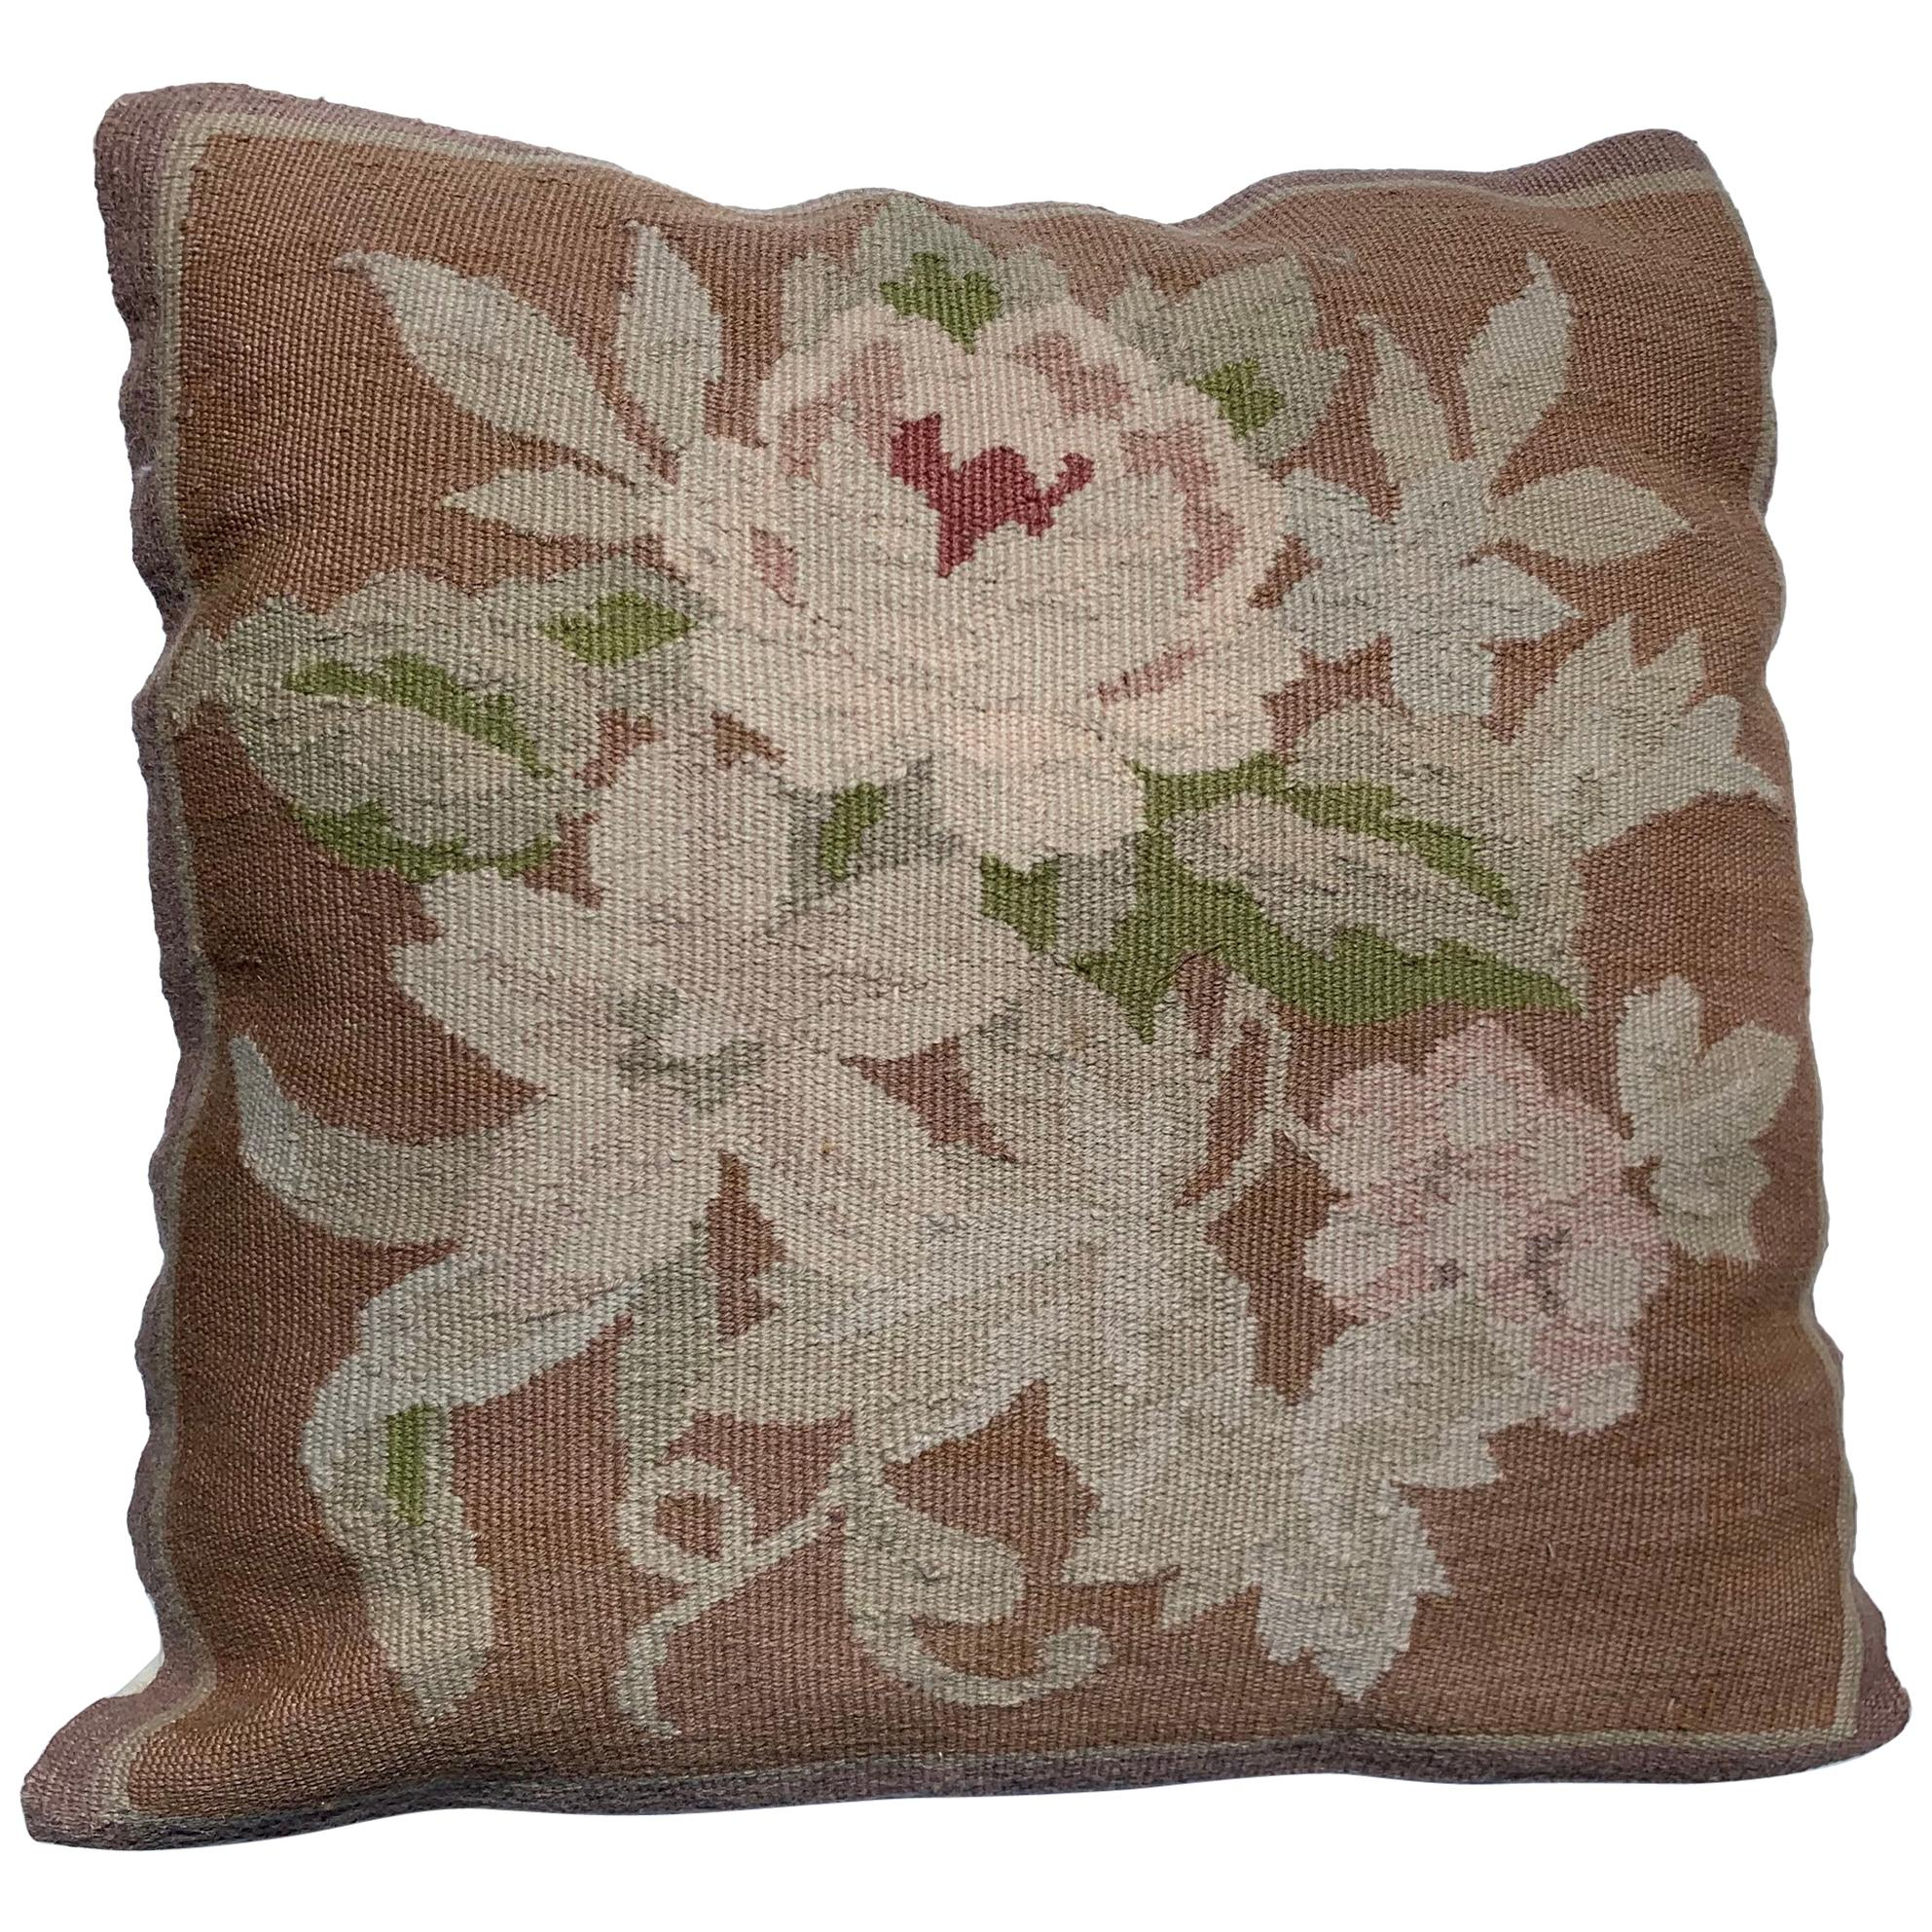 20th Century French Aubusson Tapestry Style Needlepoint Square Pillow